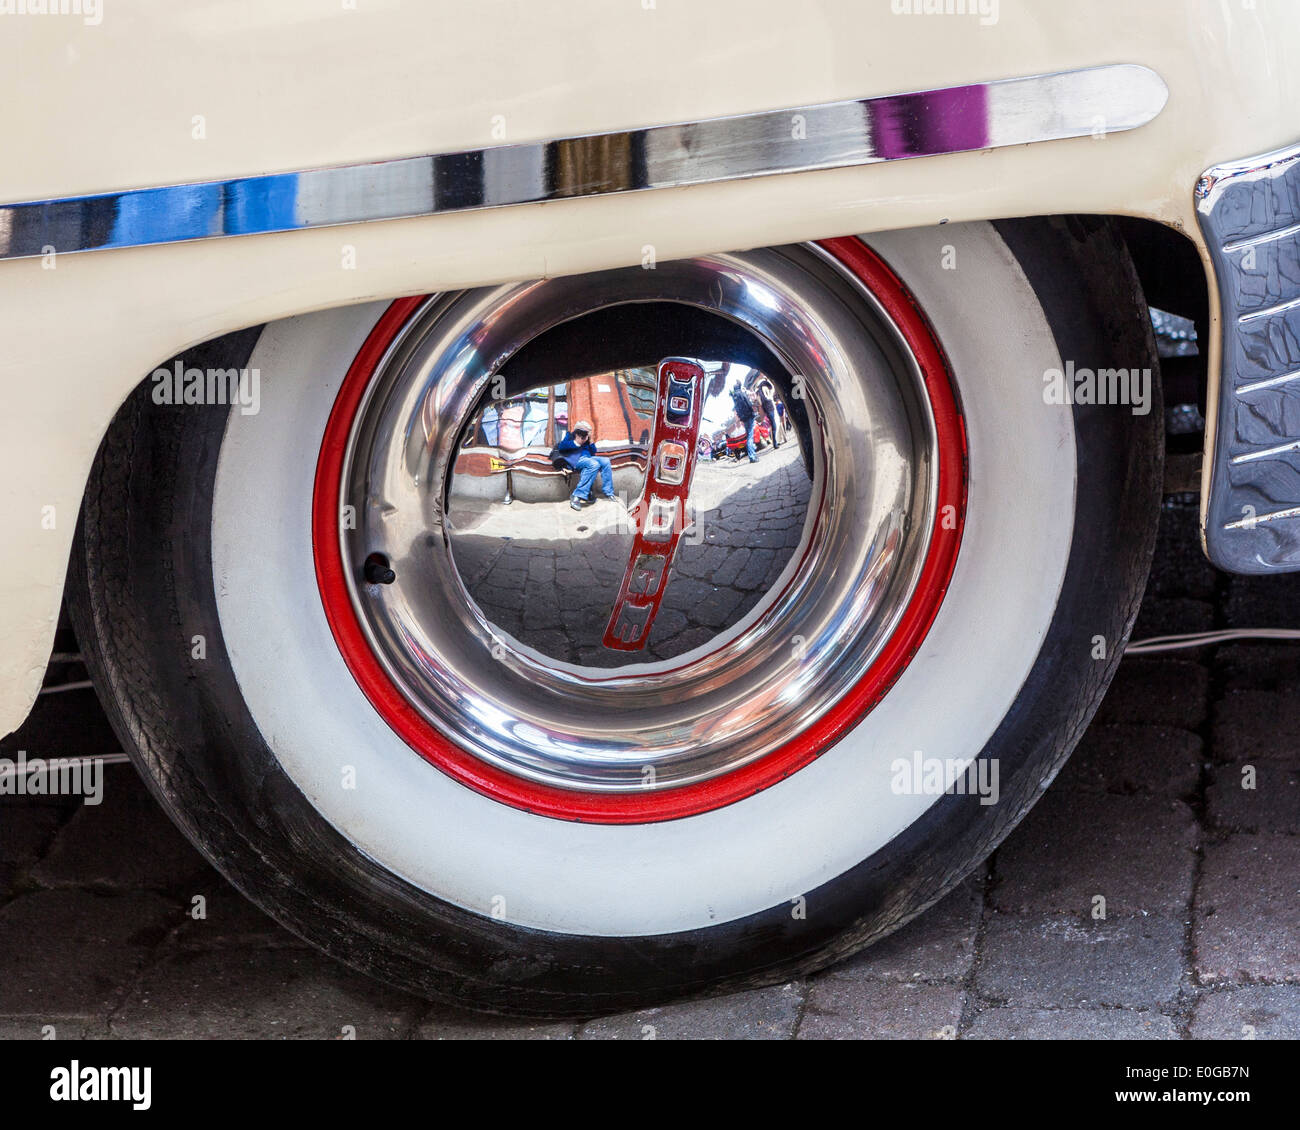 Classic Dodge car detail, whitewall tyre and hubcap - Stock Image